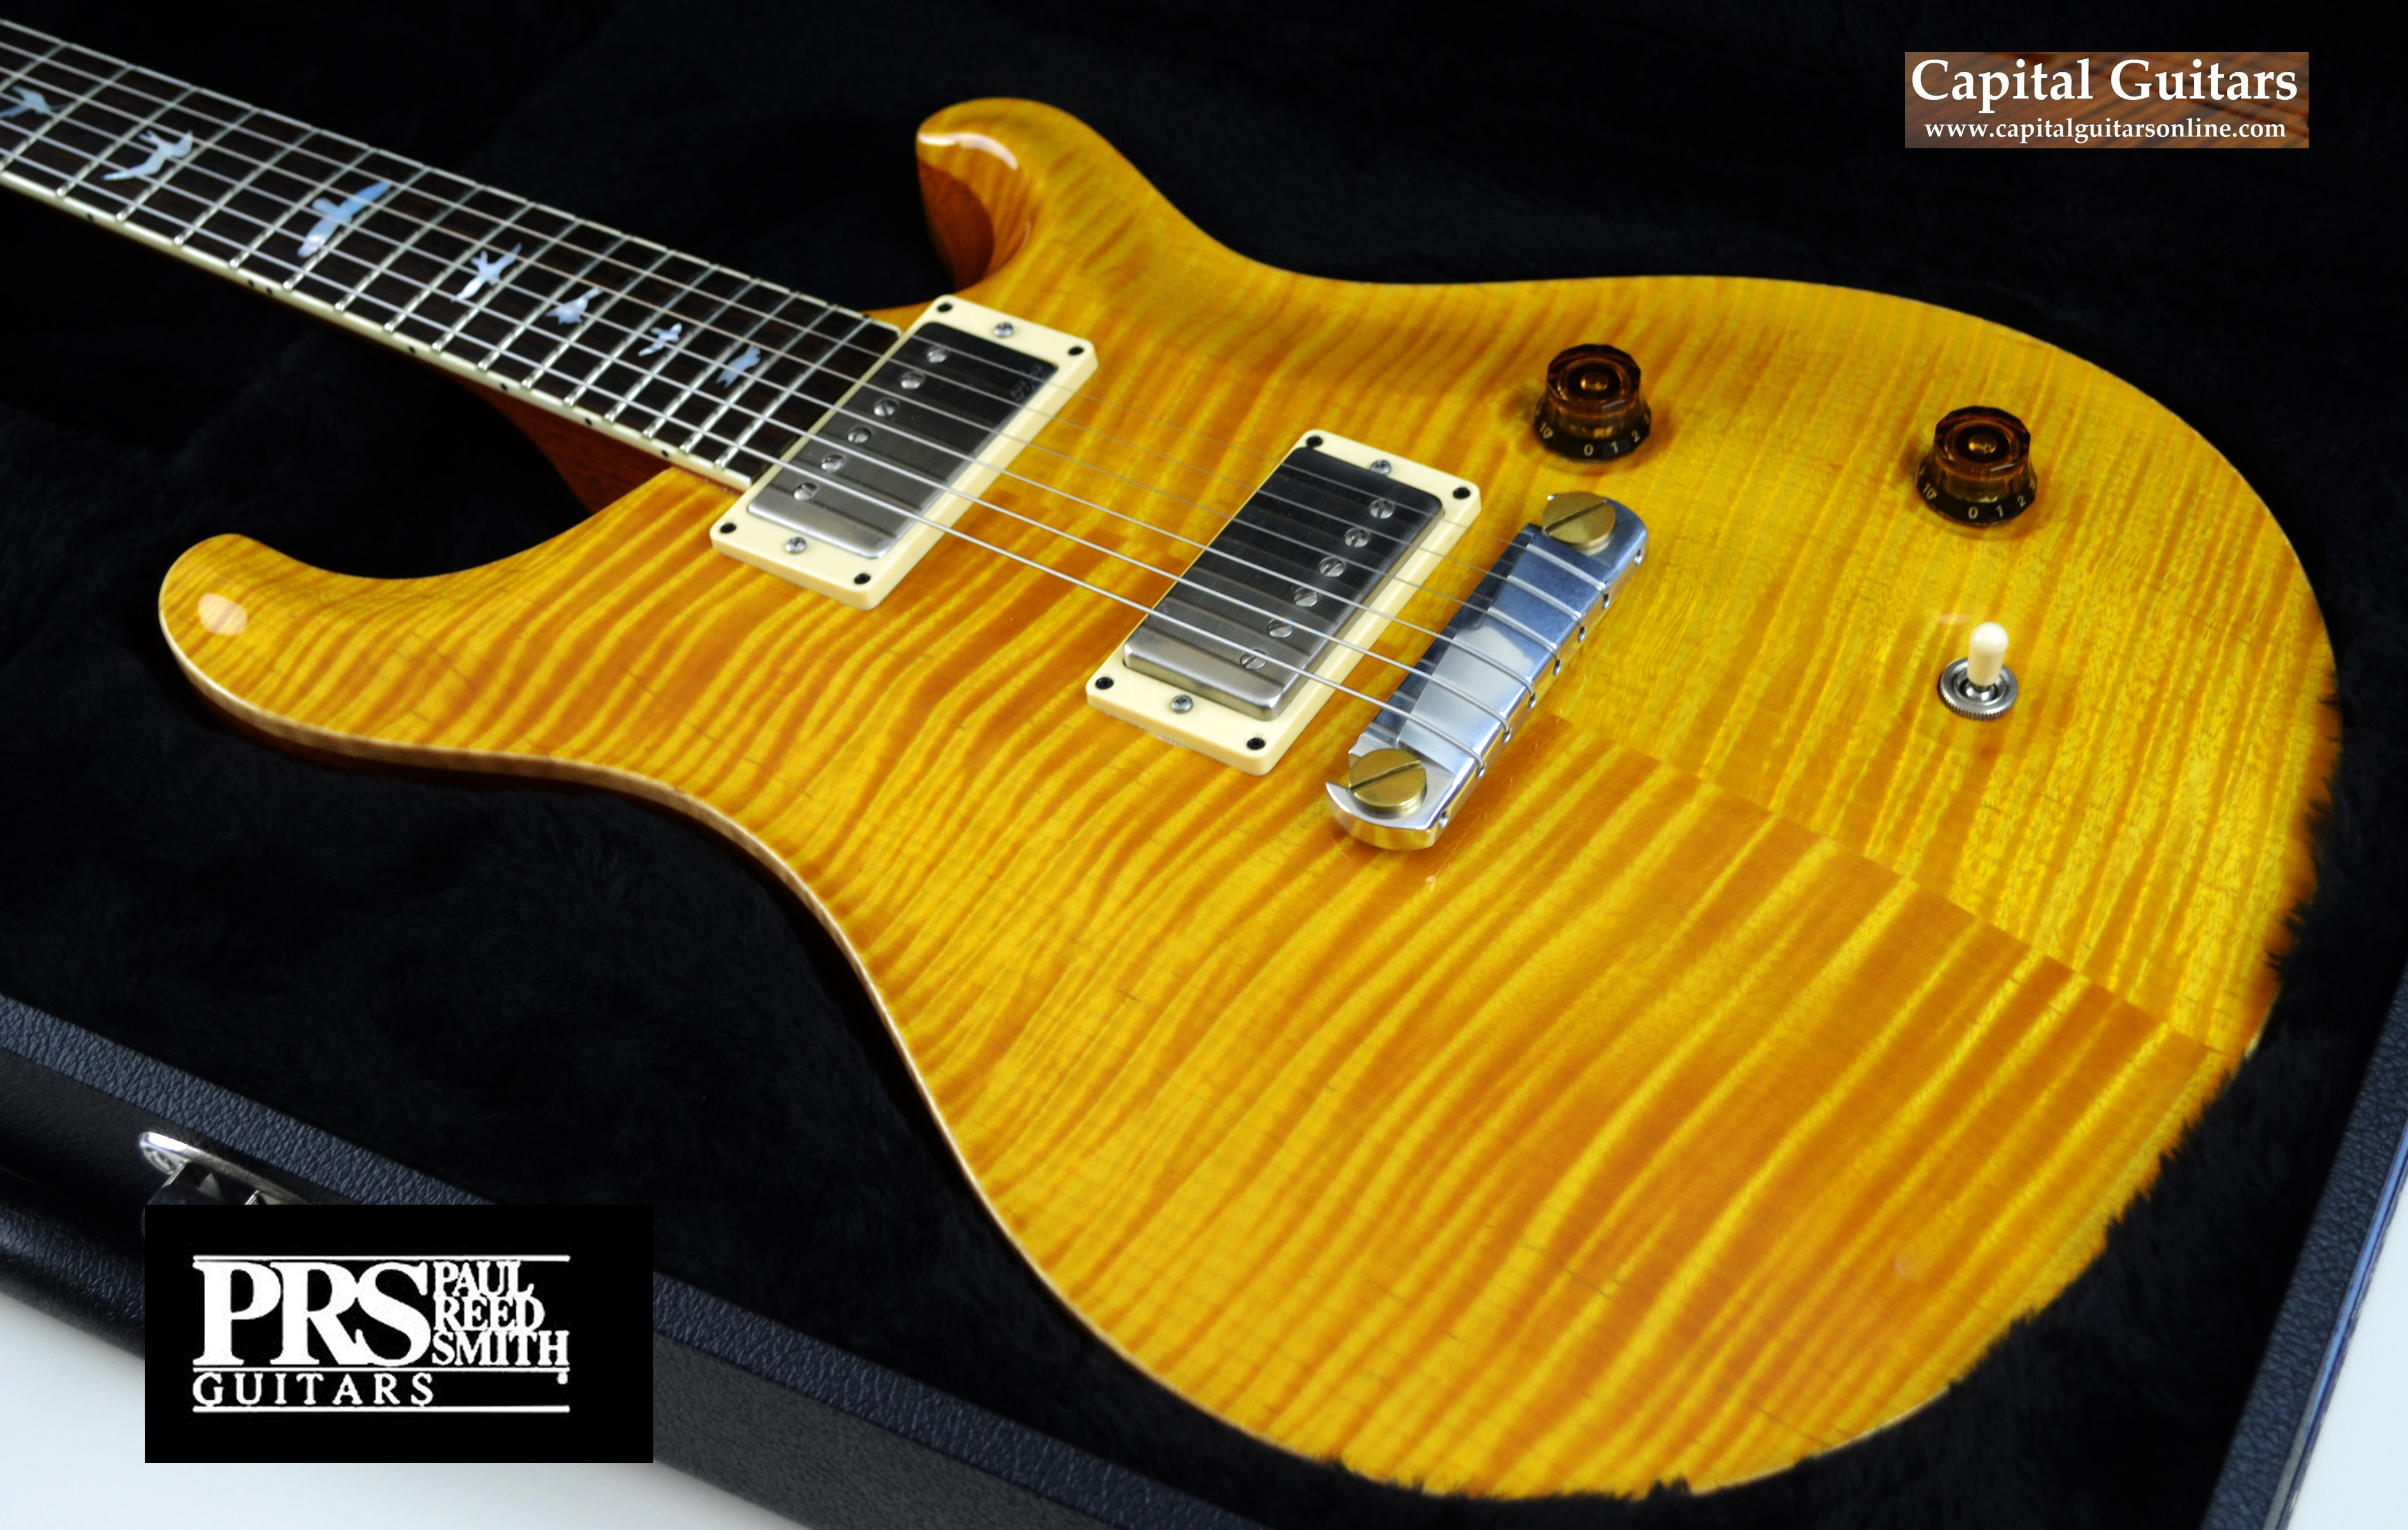 2010 paul reed smith ted mccarty dc 245 wood library ltd honey amber 2010 paul reed smith ted mccarty dc 245 wood library ltd honey amber guitars electric solid body capital guitars publicscrutiny Gallery